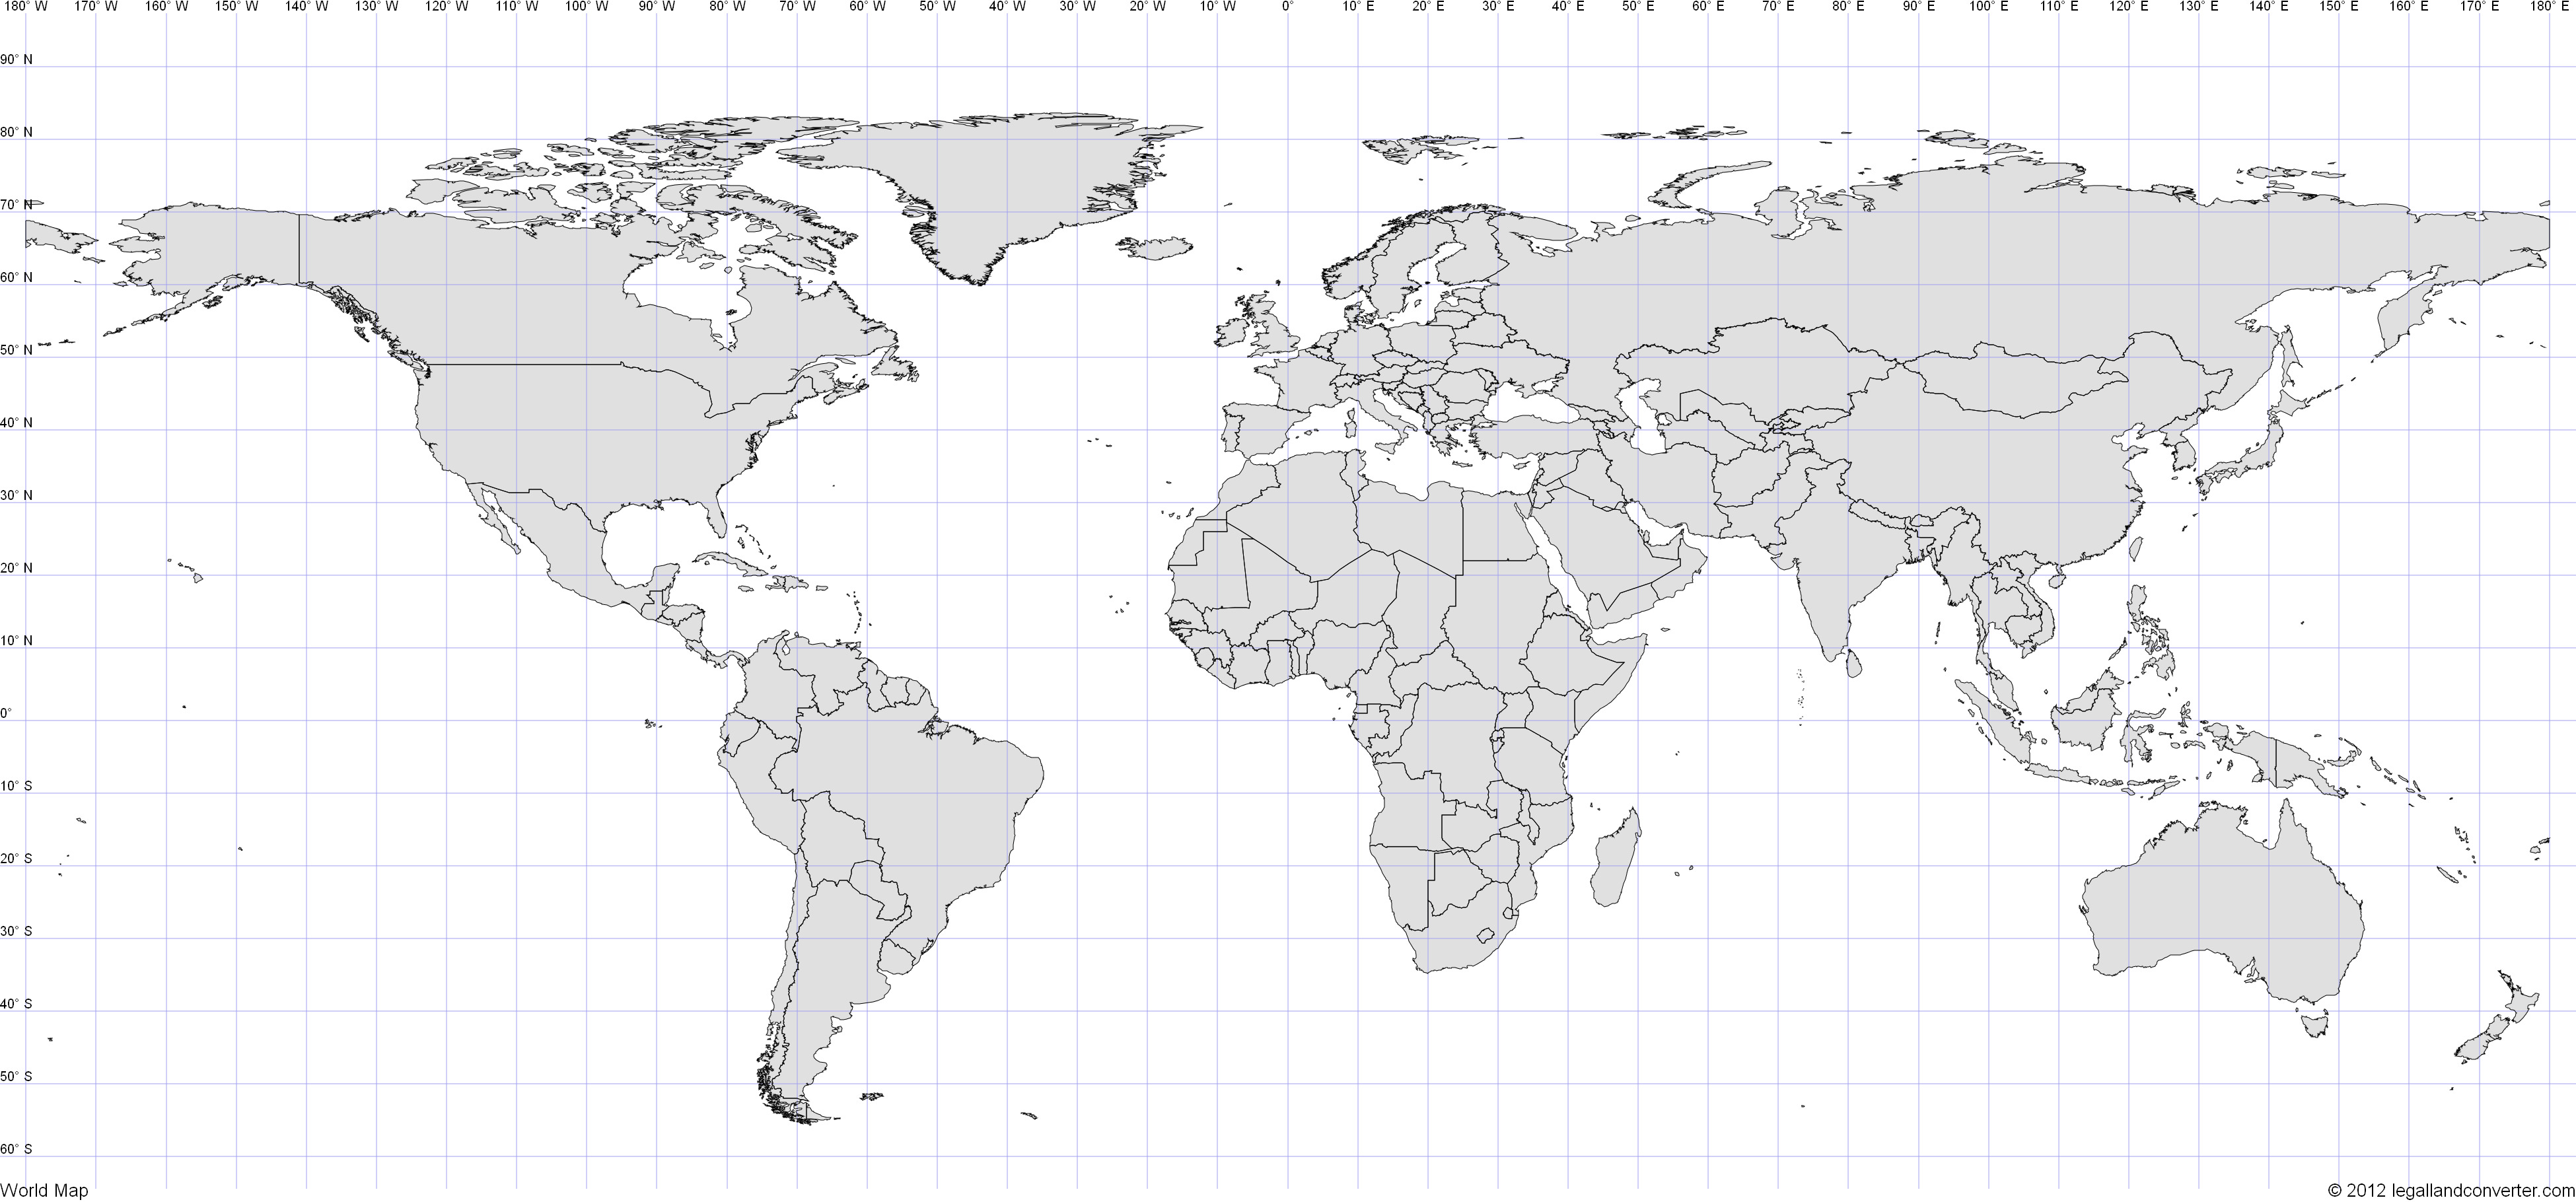 World Map With Latitude And Longitude - World map with latitudes